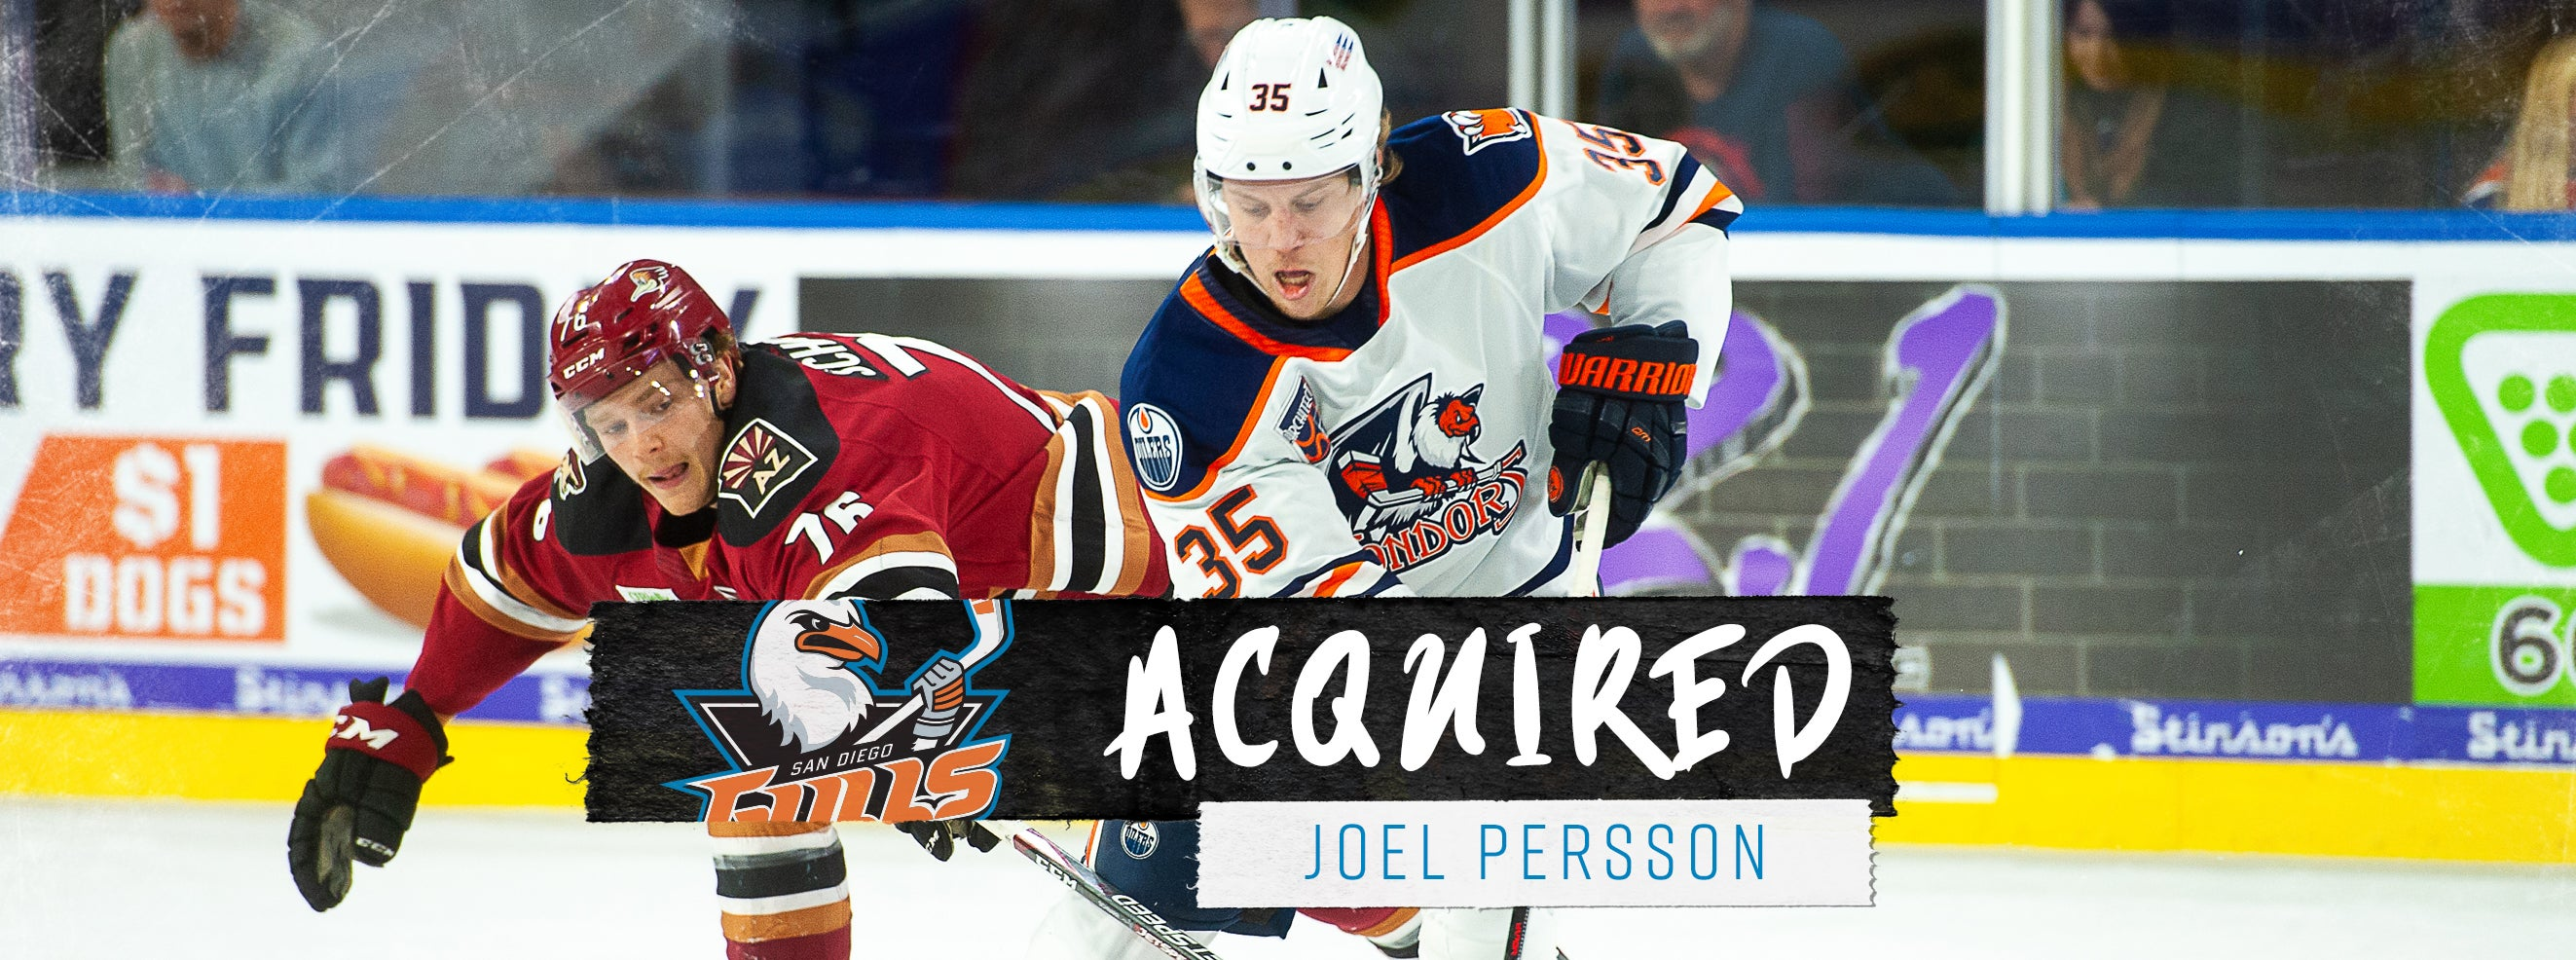 Ducks Acquire Persson from Edmonton